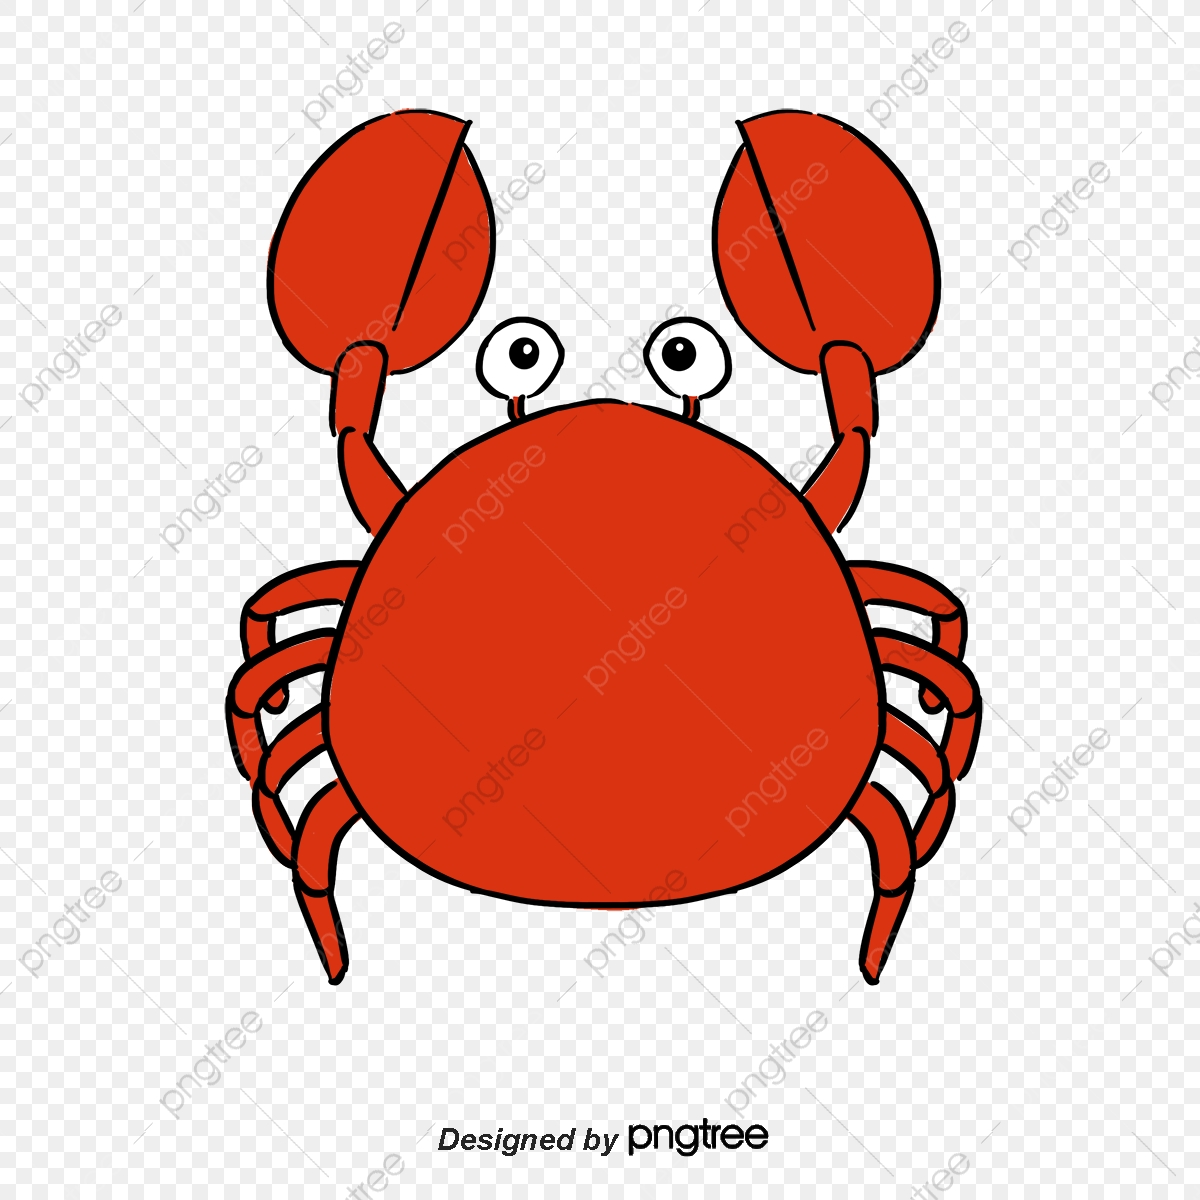 Free crab clipart pictures - WikiClipArt   1200x1200